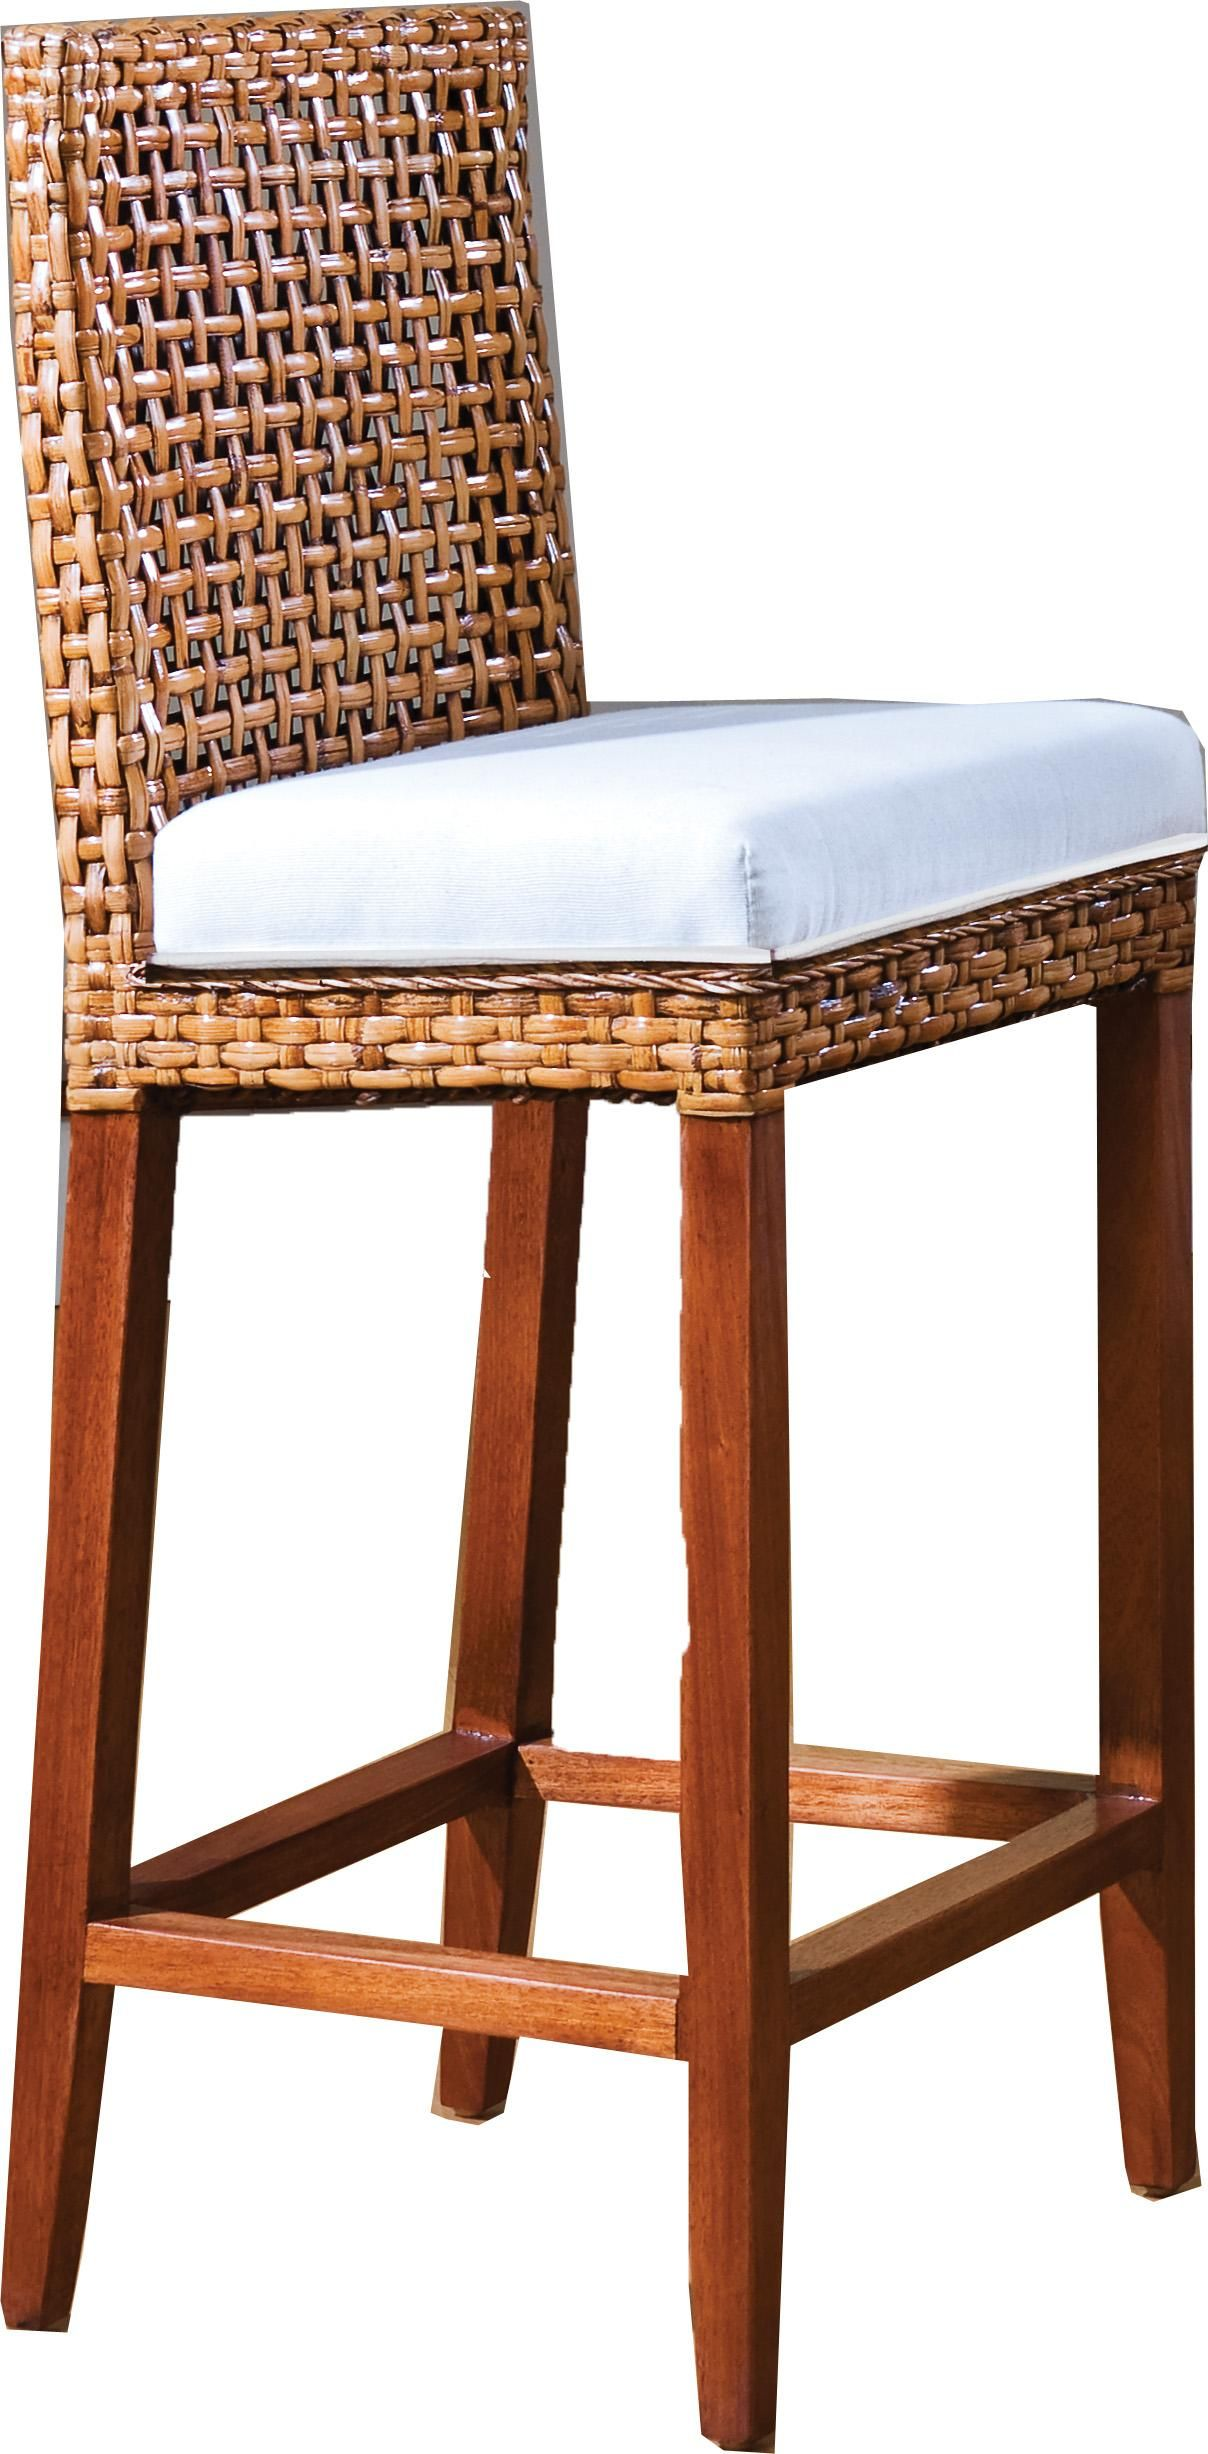 Indoor Rattan Wicker Bar Stool Ie Stools